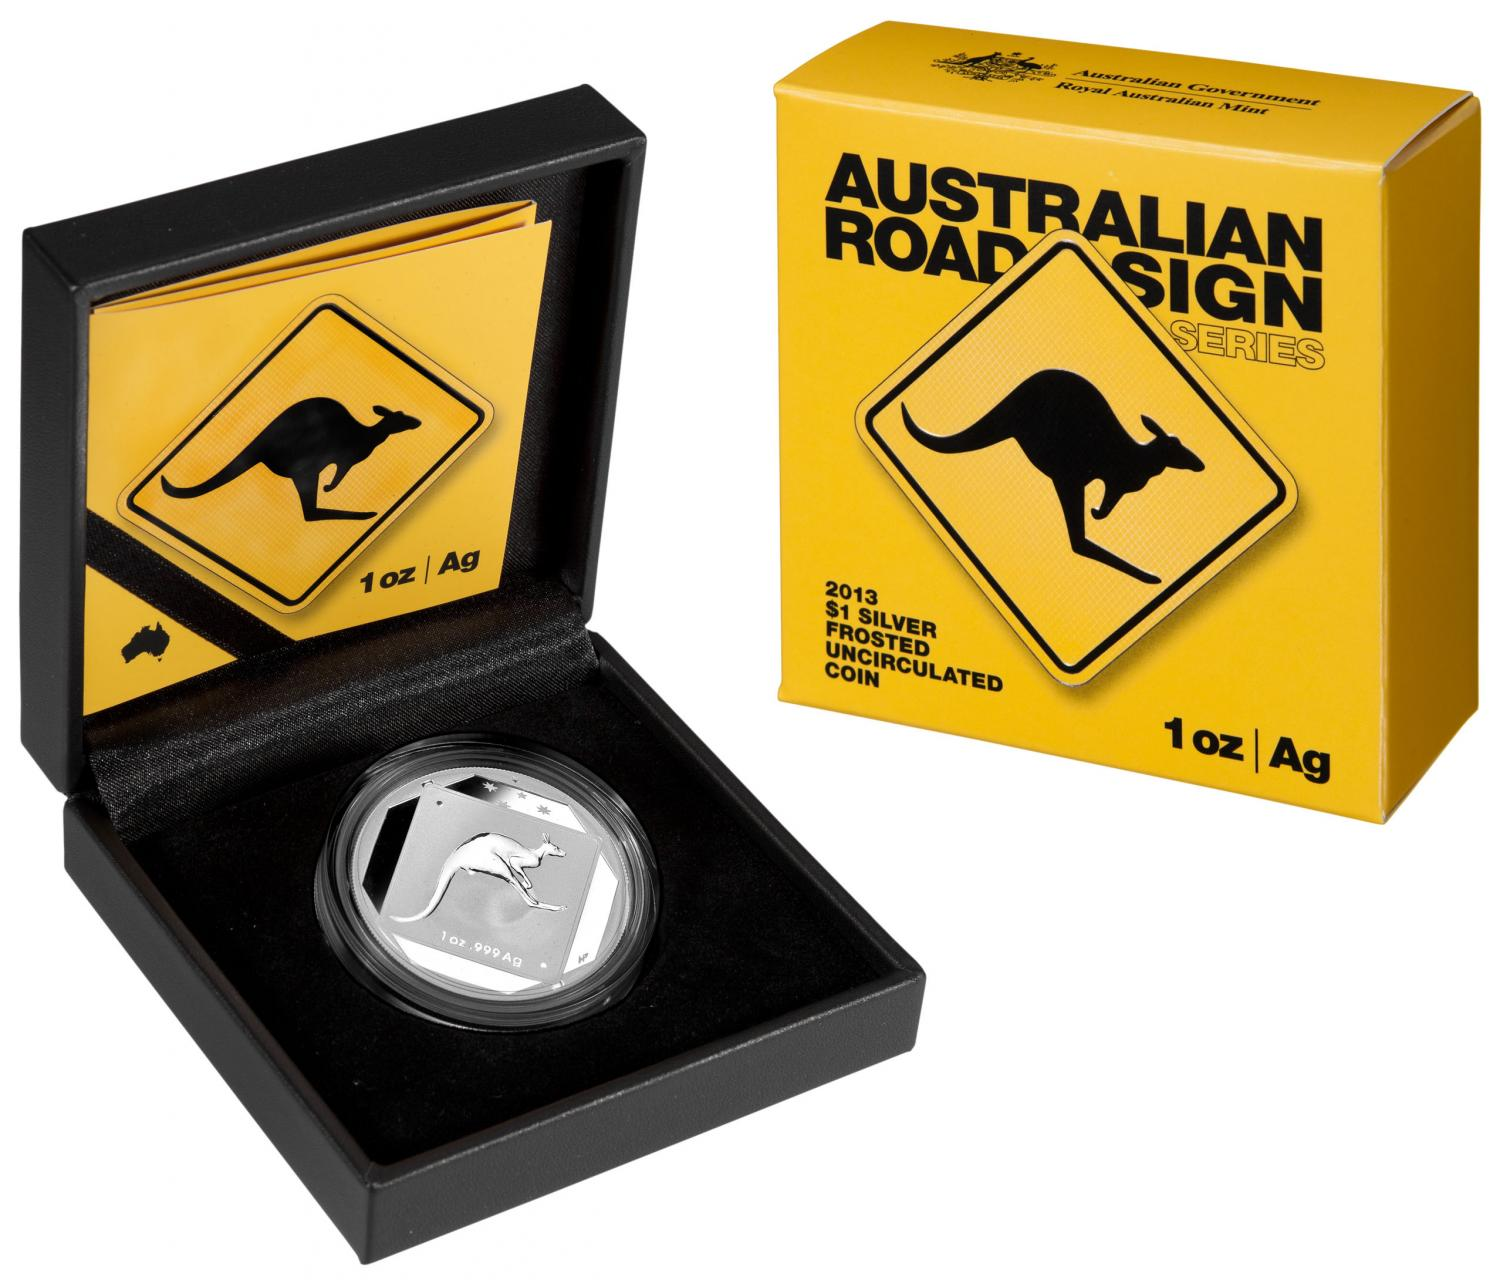 Thumbnail for 2013 1oz Silver Road Sign Series - Kangaroo